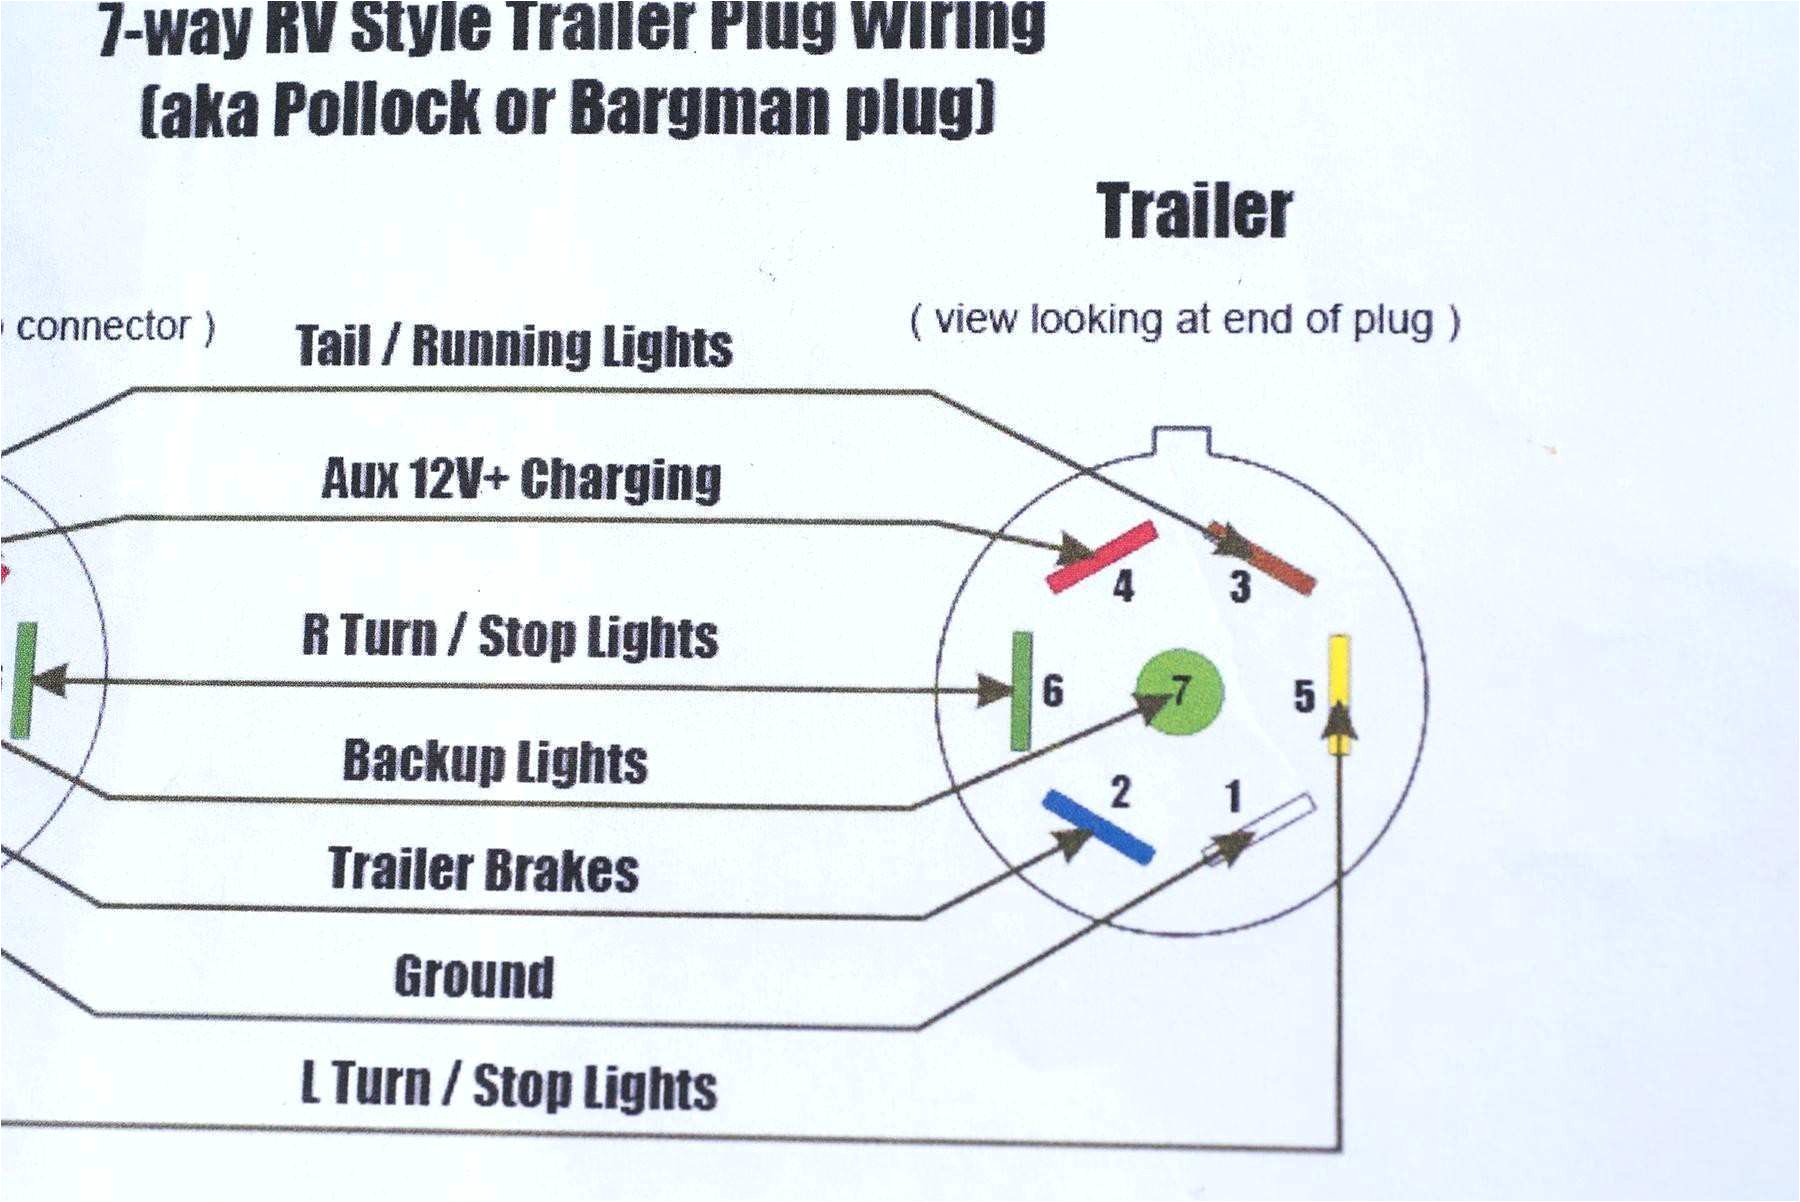 reese trailer wiring diagram wiring diagrams reese electric brake controller wiring diagram reese 7 pin trailer